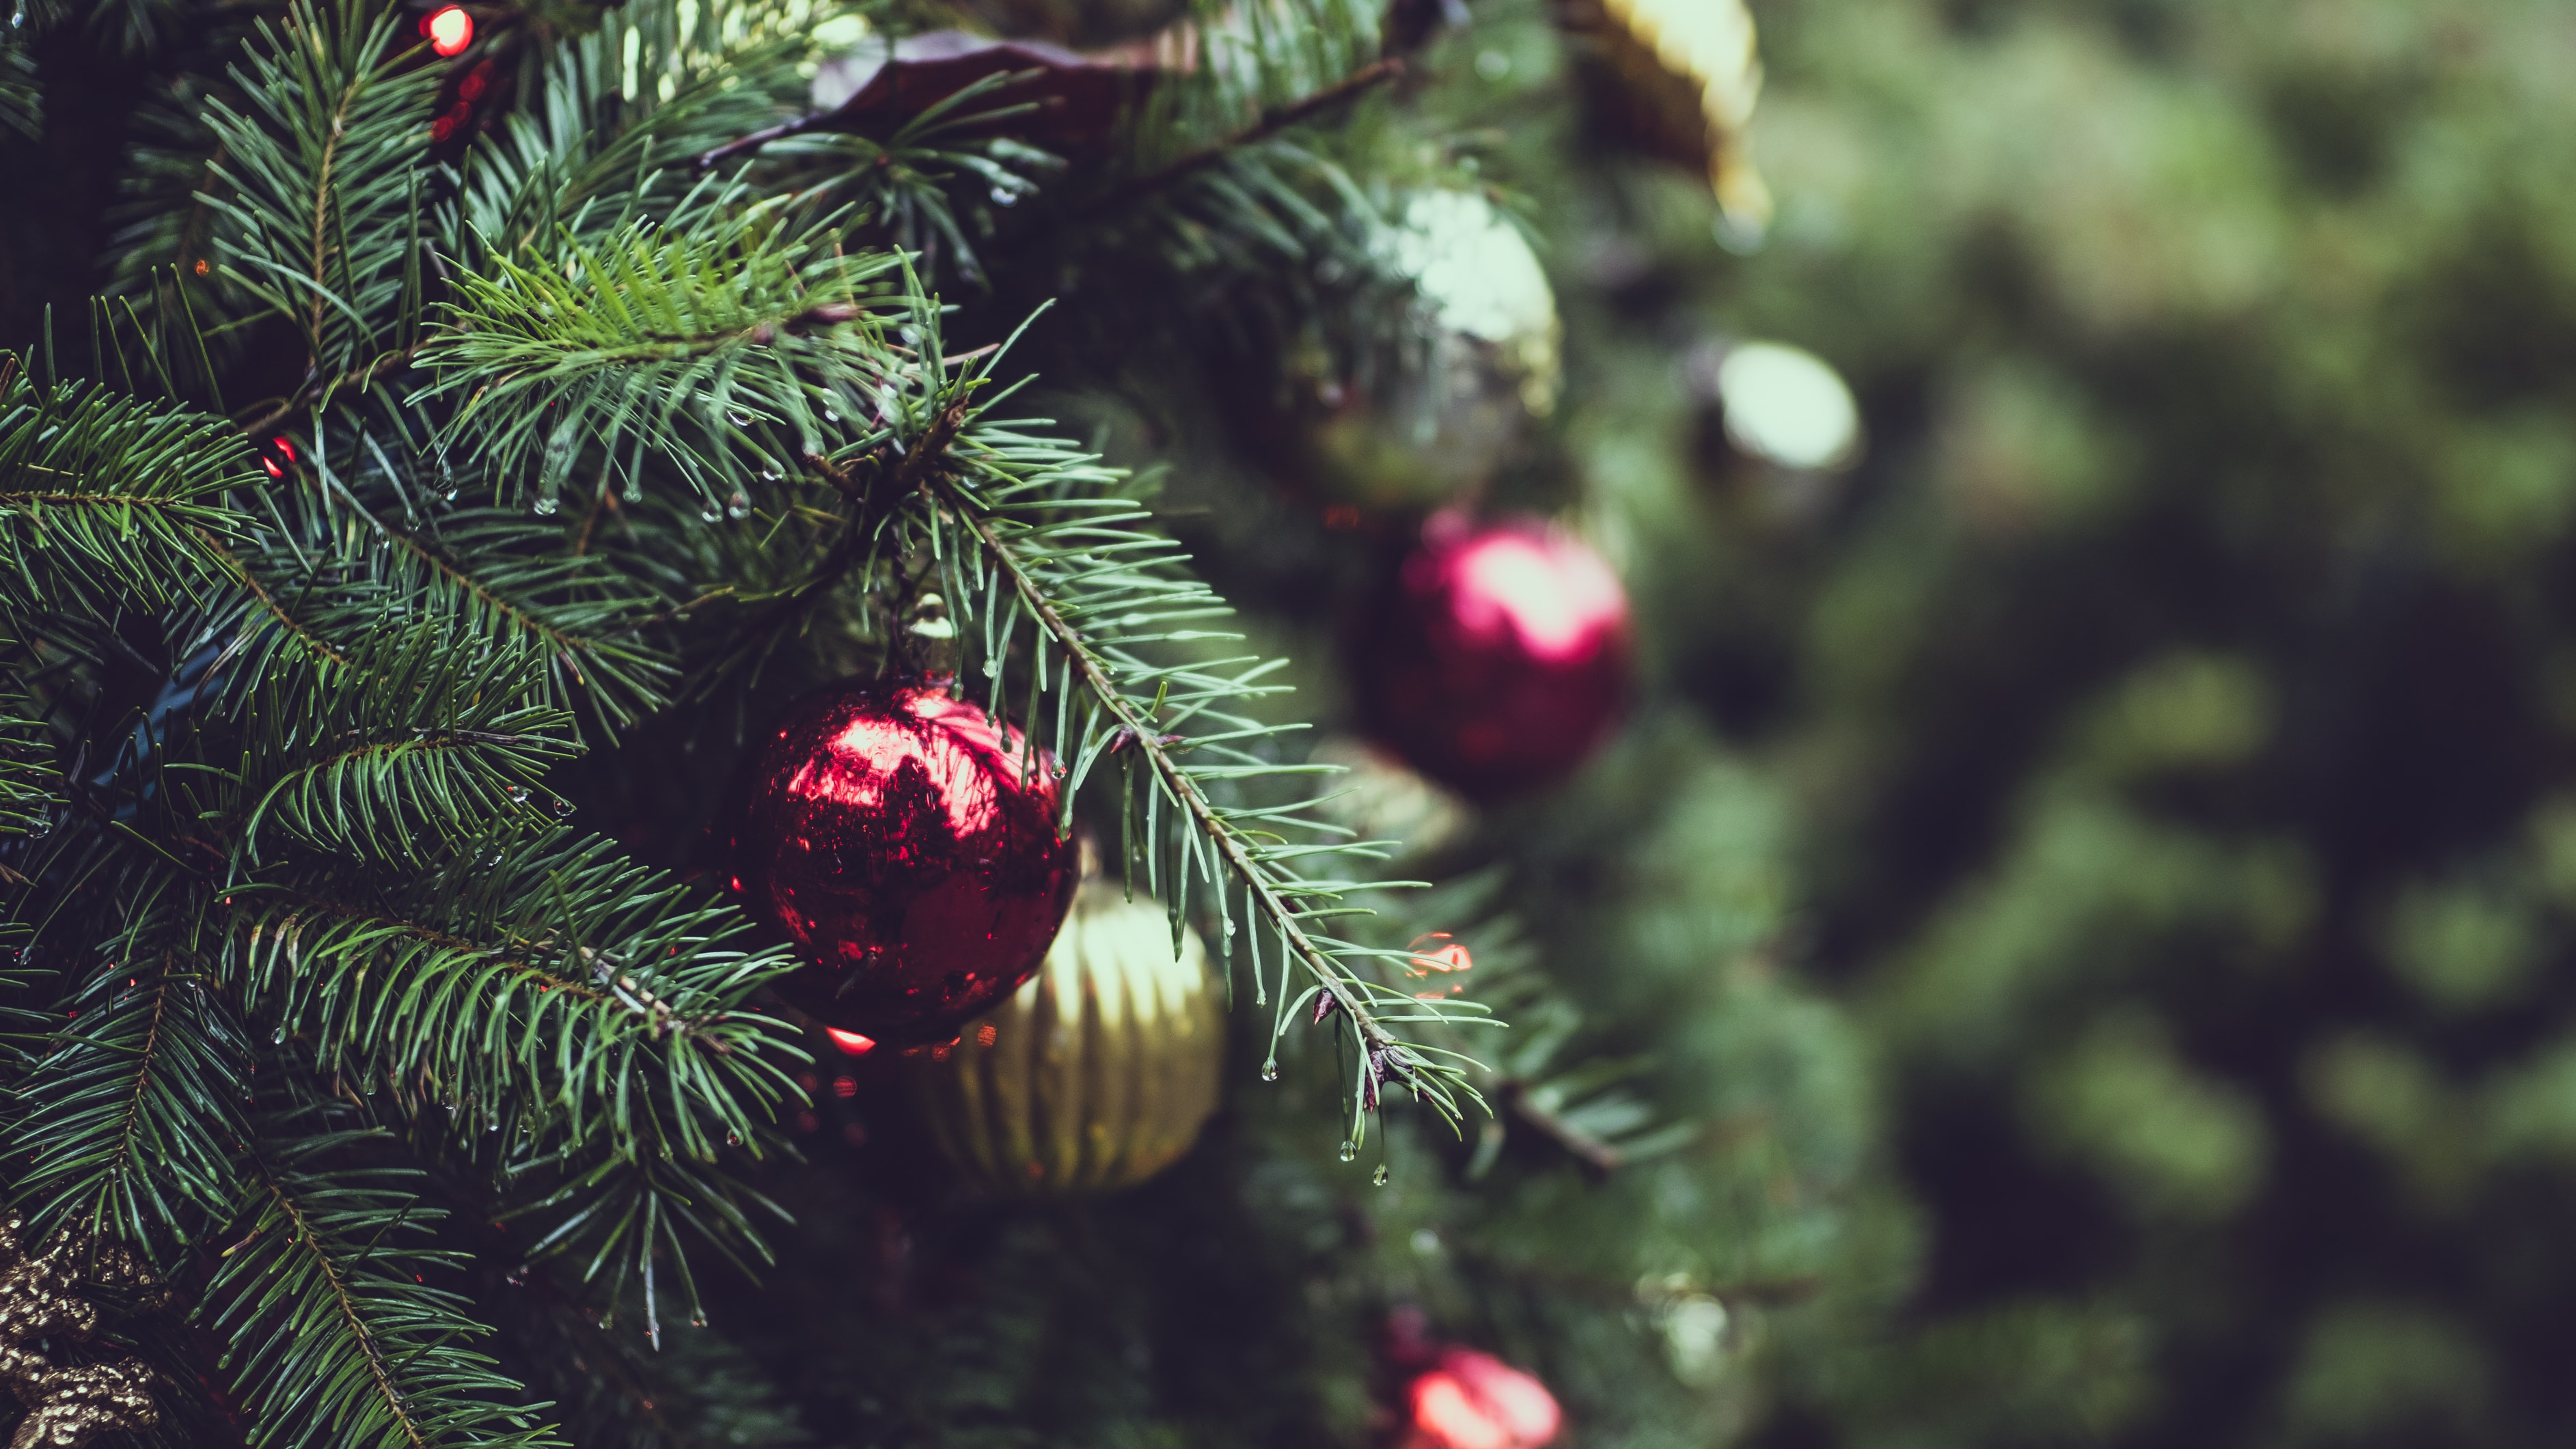 selective focus photograph of red and gold Christmas bauble balls